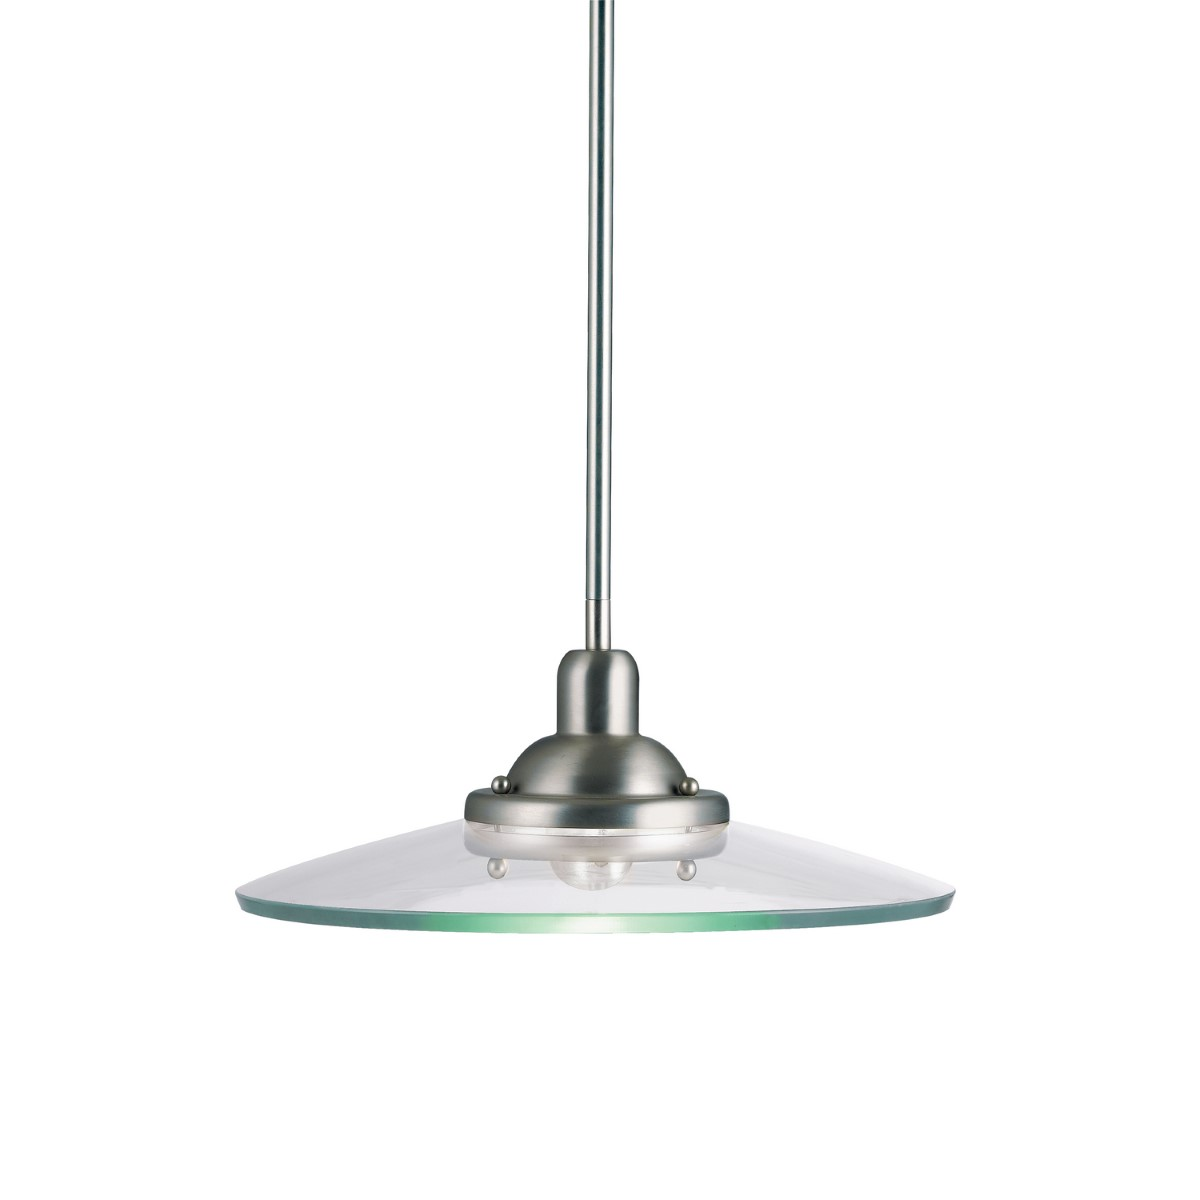 Kichler Galaxie Galaxie Pendant Light with Clear Steel Shade - Brushed Nickel (2643NI)